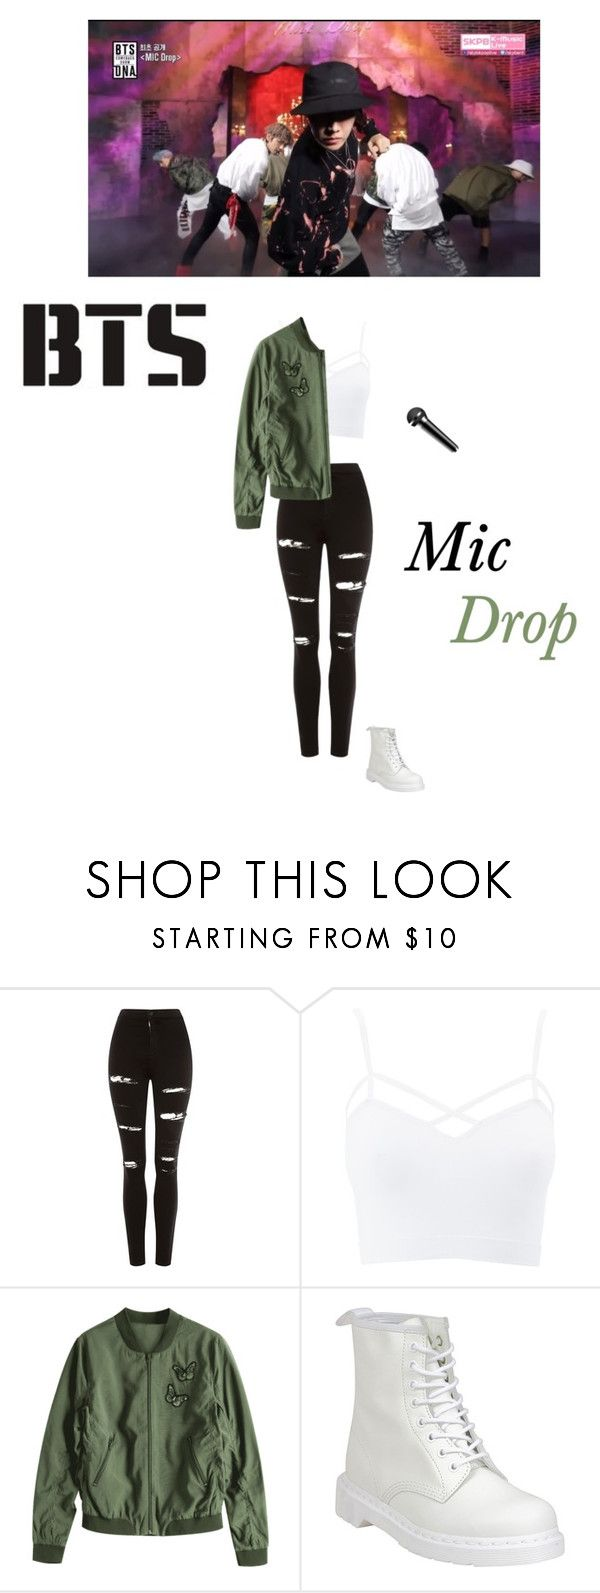 """""""Bts- mic drop live performance"""" by mochichimchim ❤ liked on Polyvore featuring Topshop, Charlotte Russe, Dr. Martens and plus size clothing"""